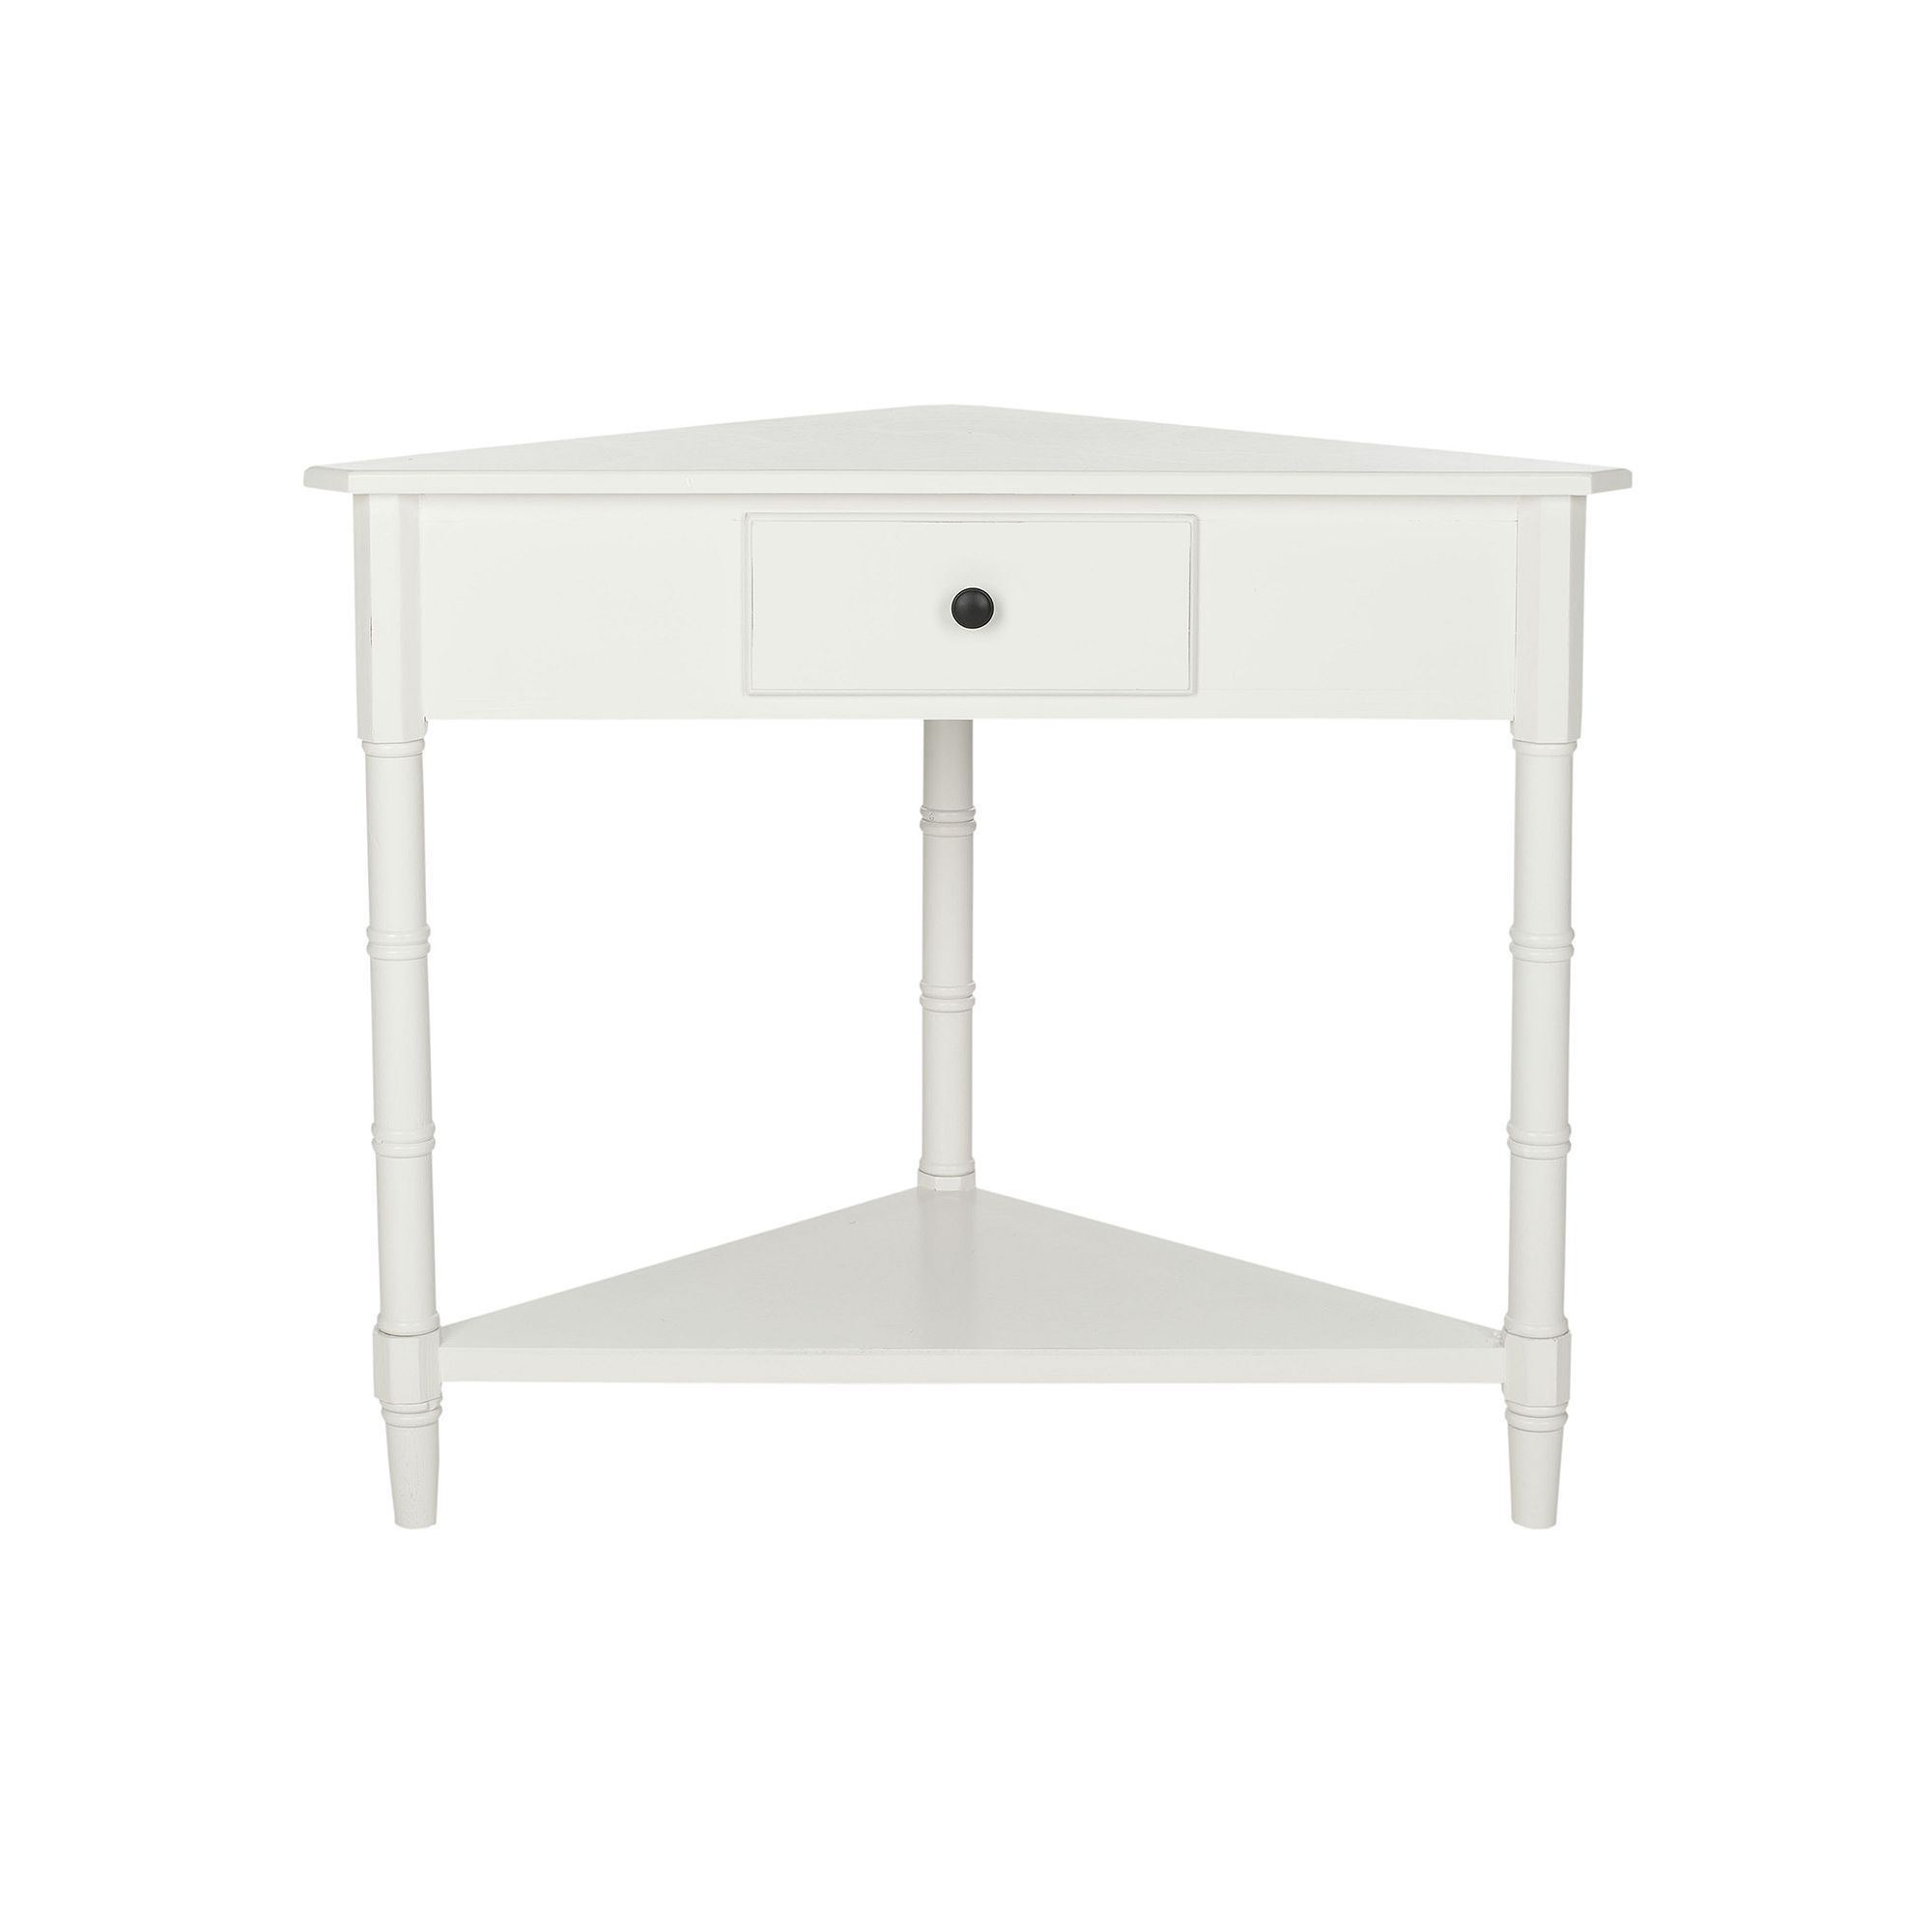 safavieh gomez corner accent table products with drawer white bedroom mirrors distressed wood side circular metal gold console small outside and chairs nate berkus rugs